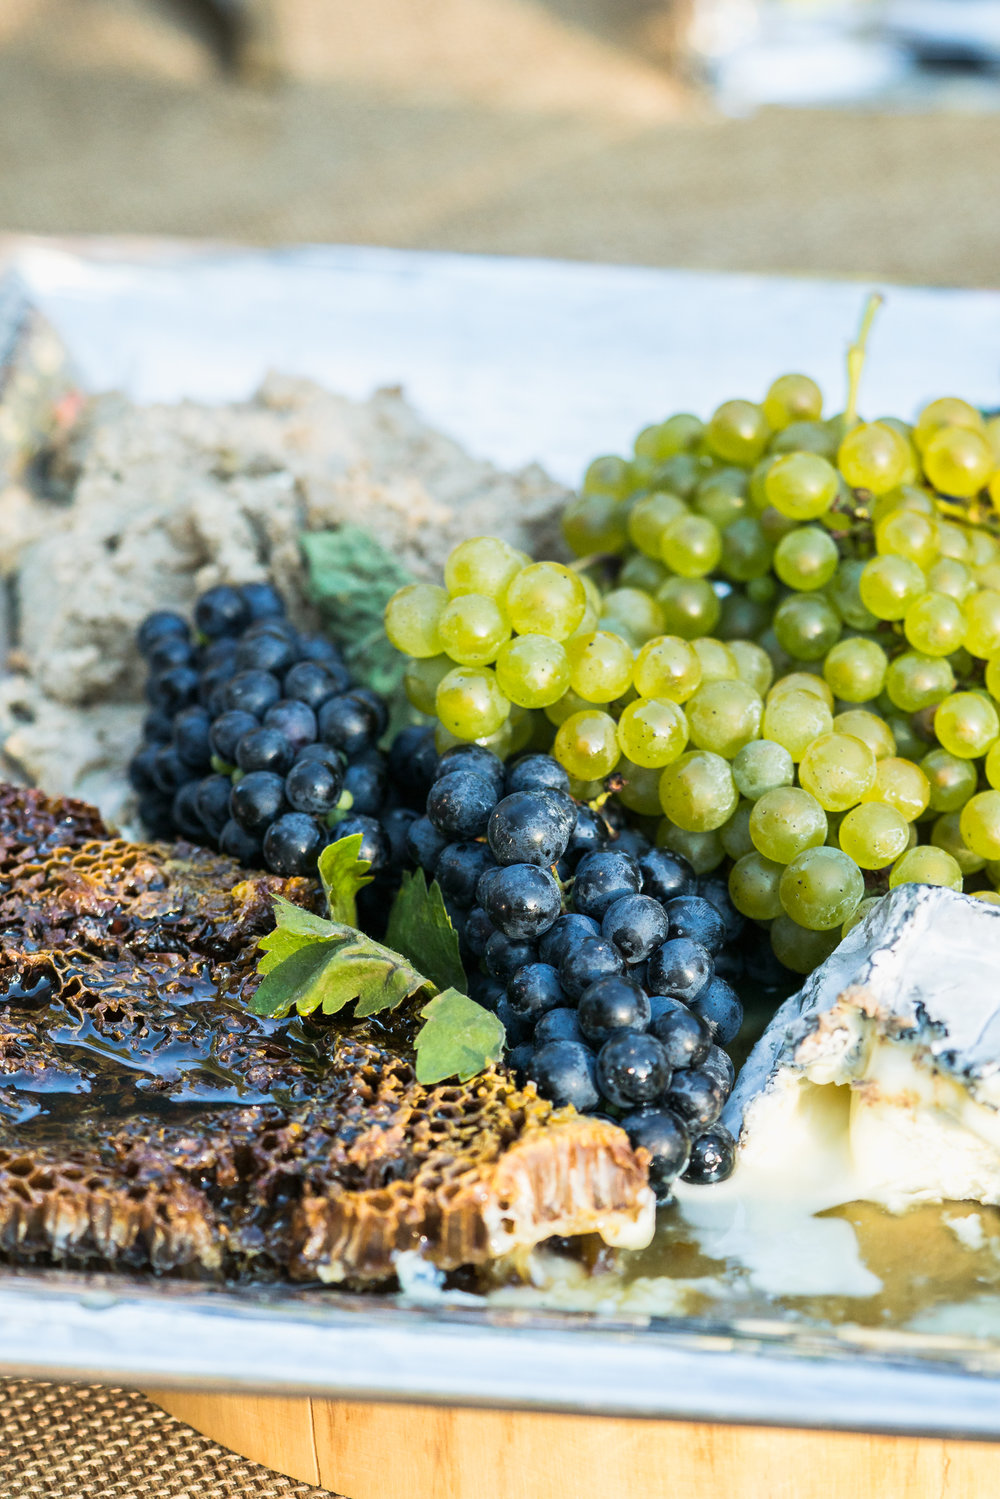 """A regional food dinner series """"Taste of Blue Ridge"""" focusing on chefs in the Blue Ridge region and the farmers who produce the food with a multi course meal."""